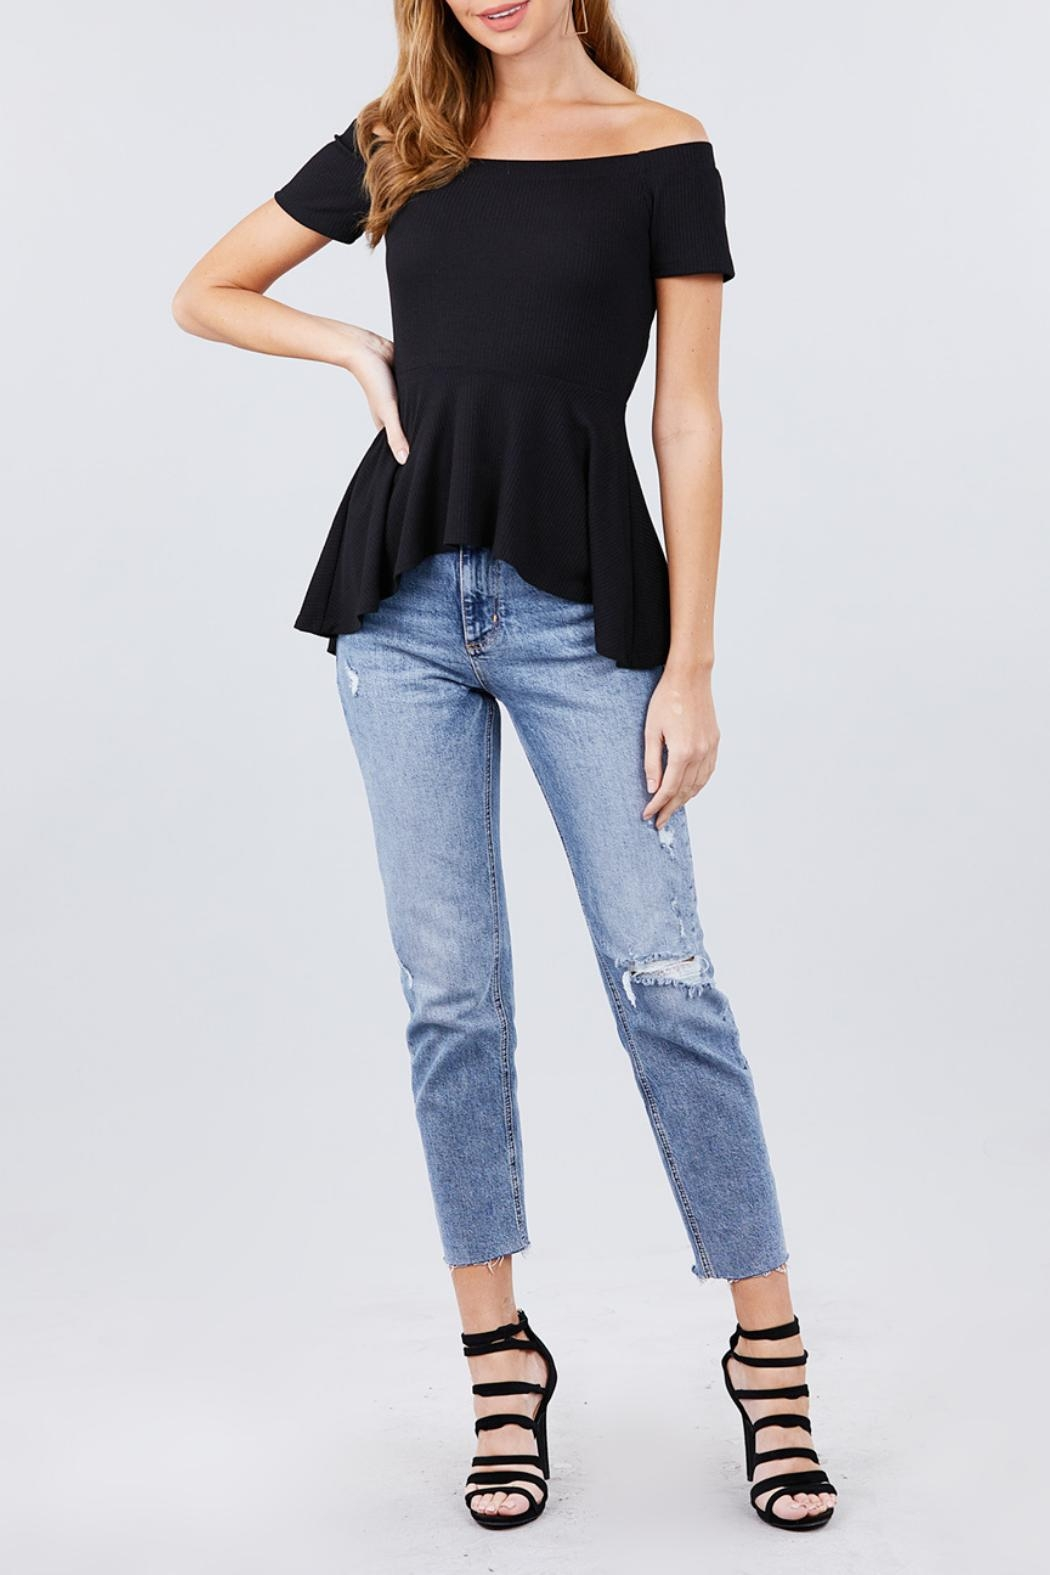 Active USA Black Peplum Top - Side Cropped Image